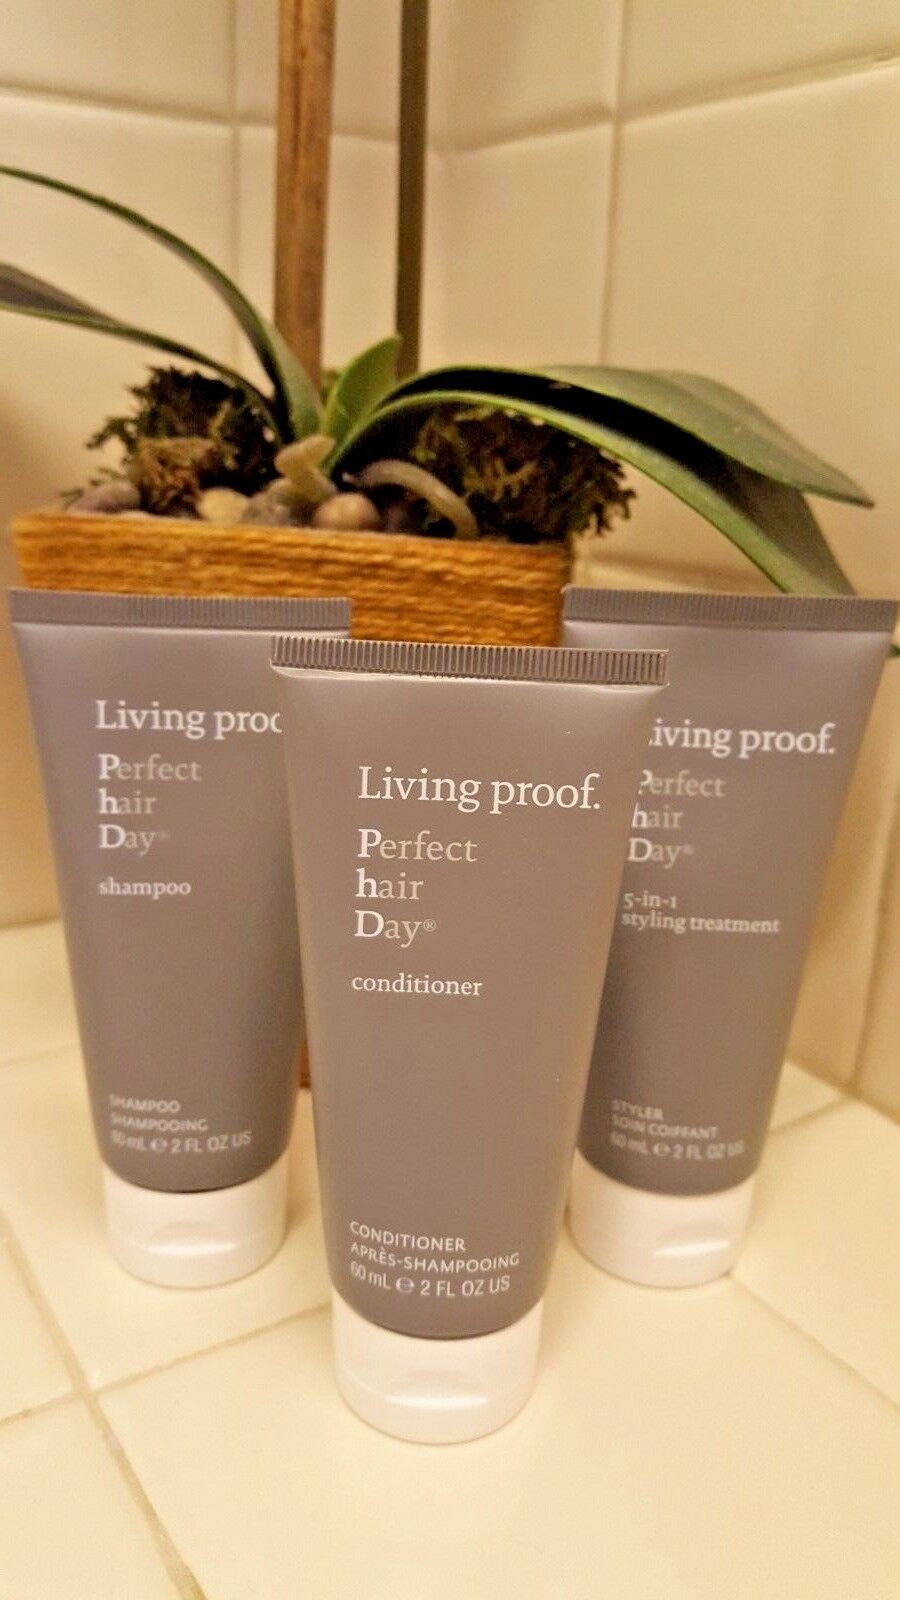 Living Proof Perfect Hair Day trio- Shampoo/Conditioner/5-in